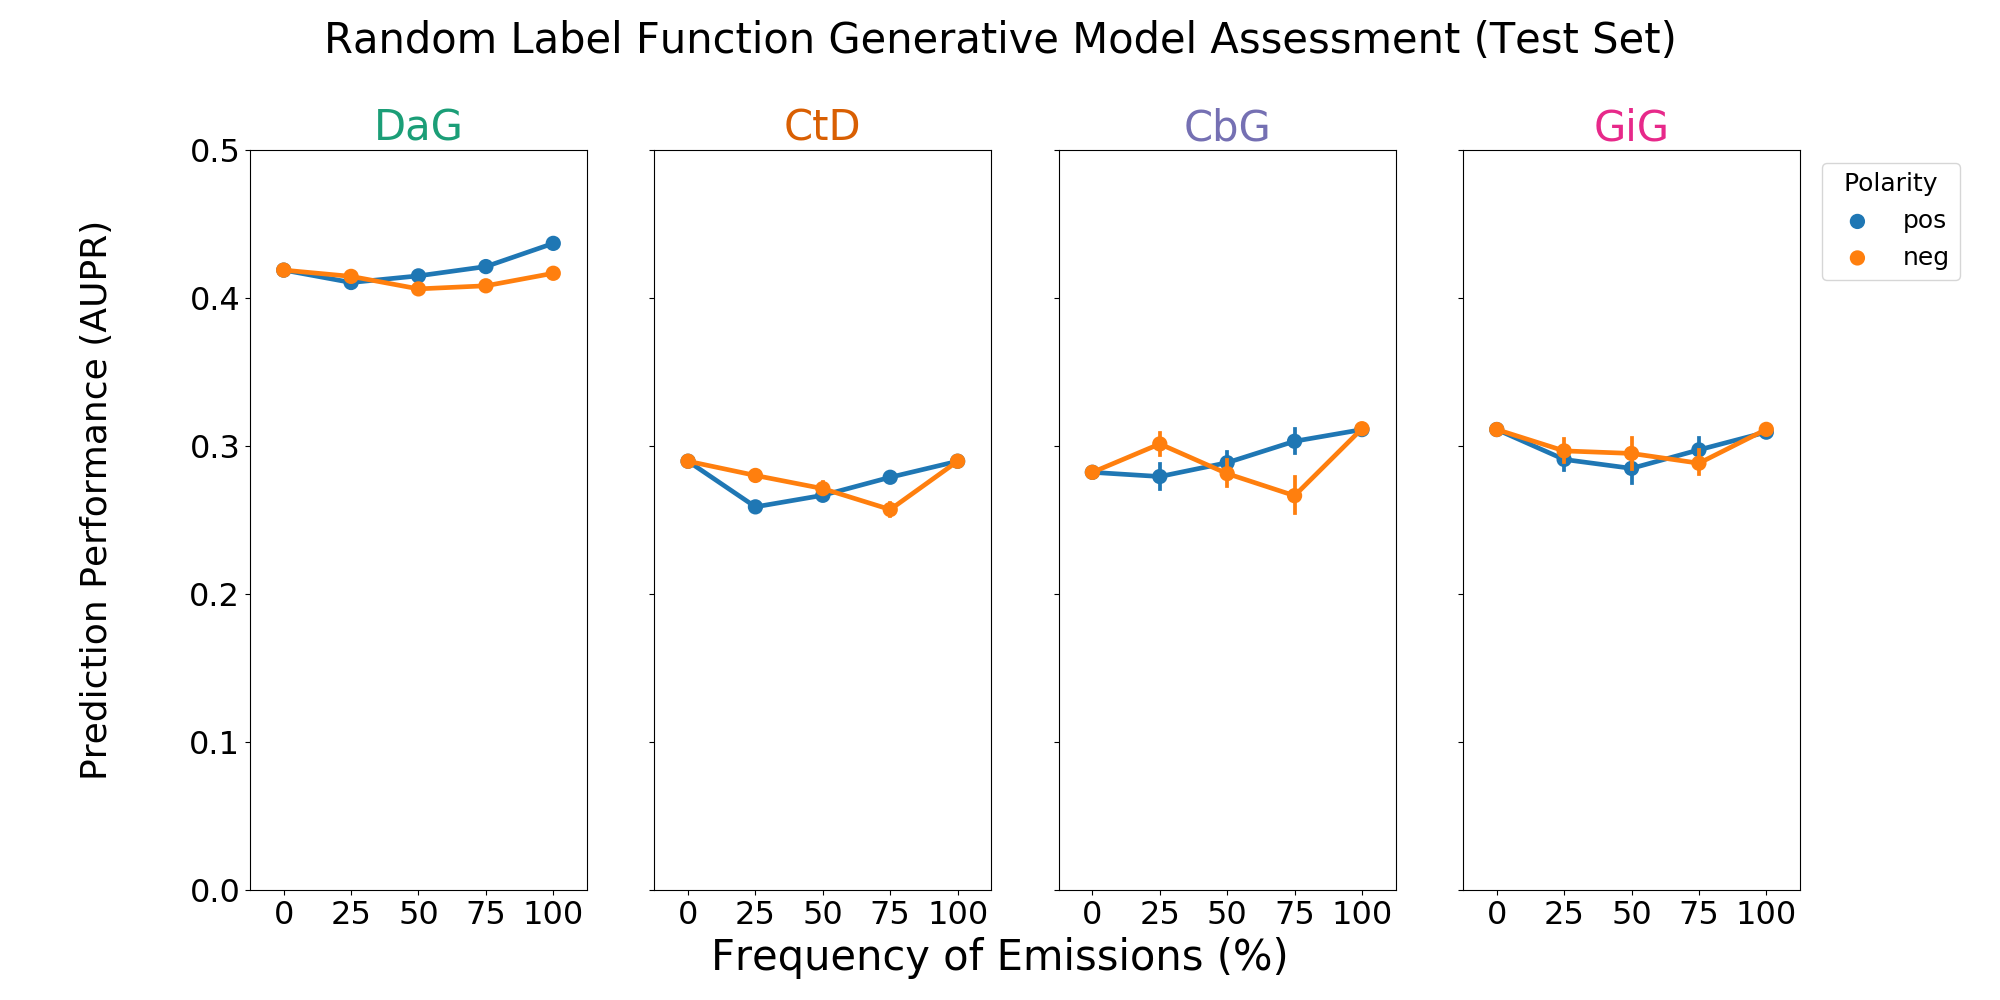 Figure 6: A grid of AUROC (A) scores for each edge type. Each plot consists of adding a single label function on top of the baseline model. This label function emits a positive (shown in blue) or negative (shown in orange) label at specified frequencies, and performance at zero is equivalent to not having a randomly emitting label function. The error bars represent 95% confidence intervals for AUROC or AUPR (y-axis) at each emission frequency.